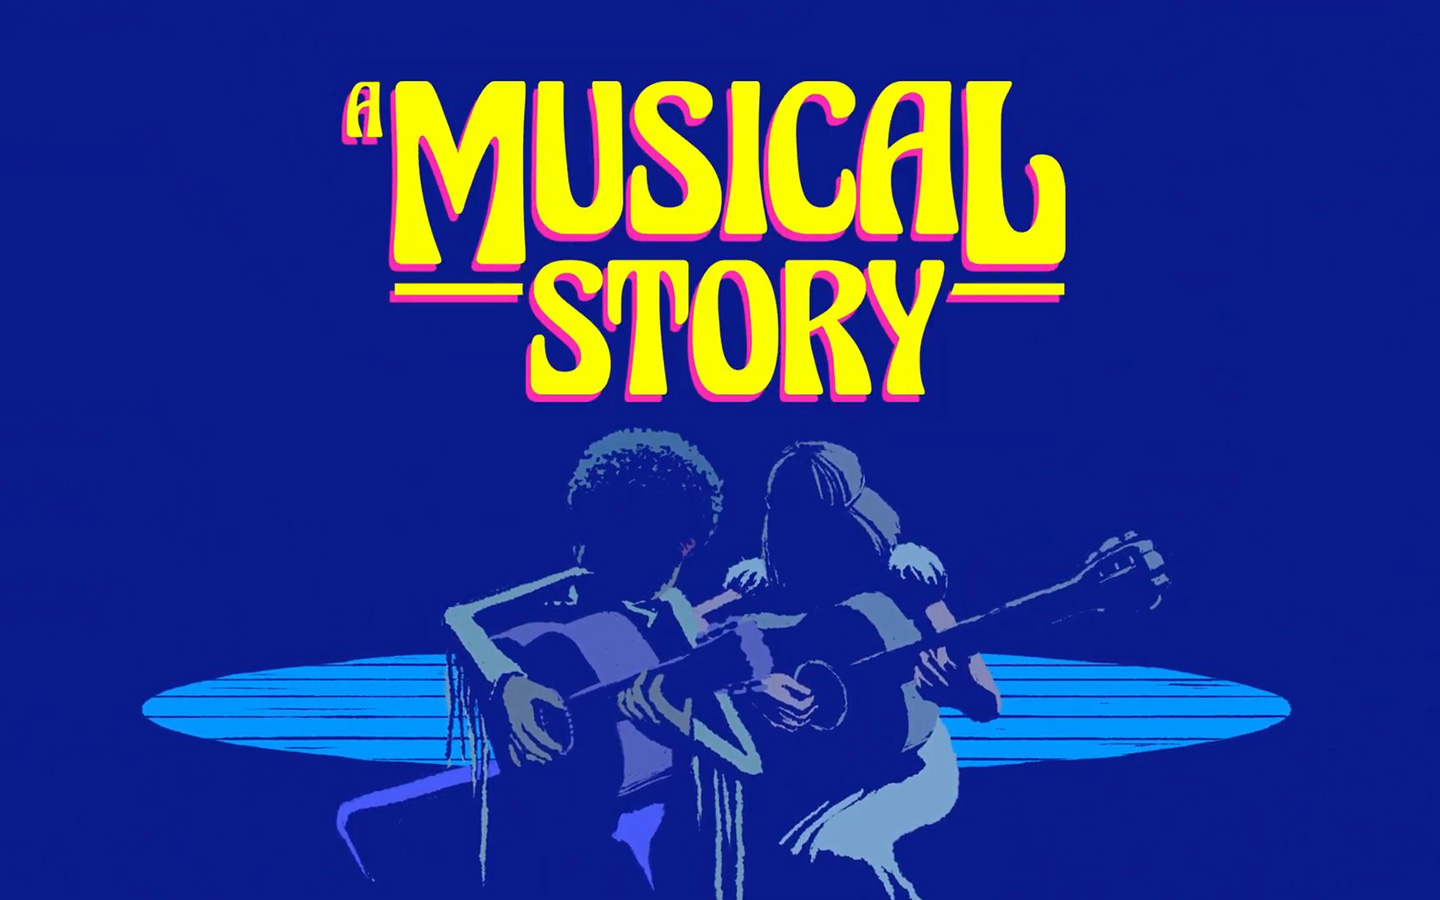 Free A Musical Story Wallpaper in 1440x900